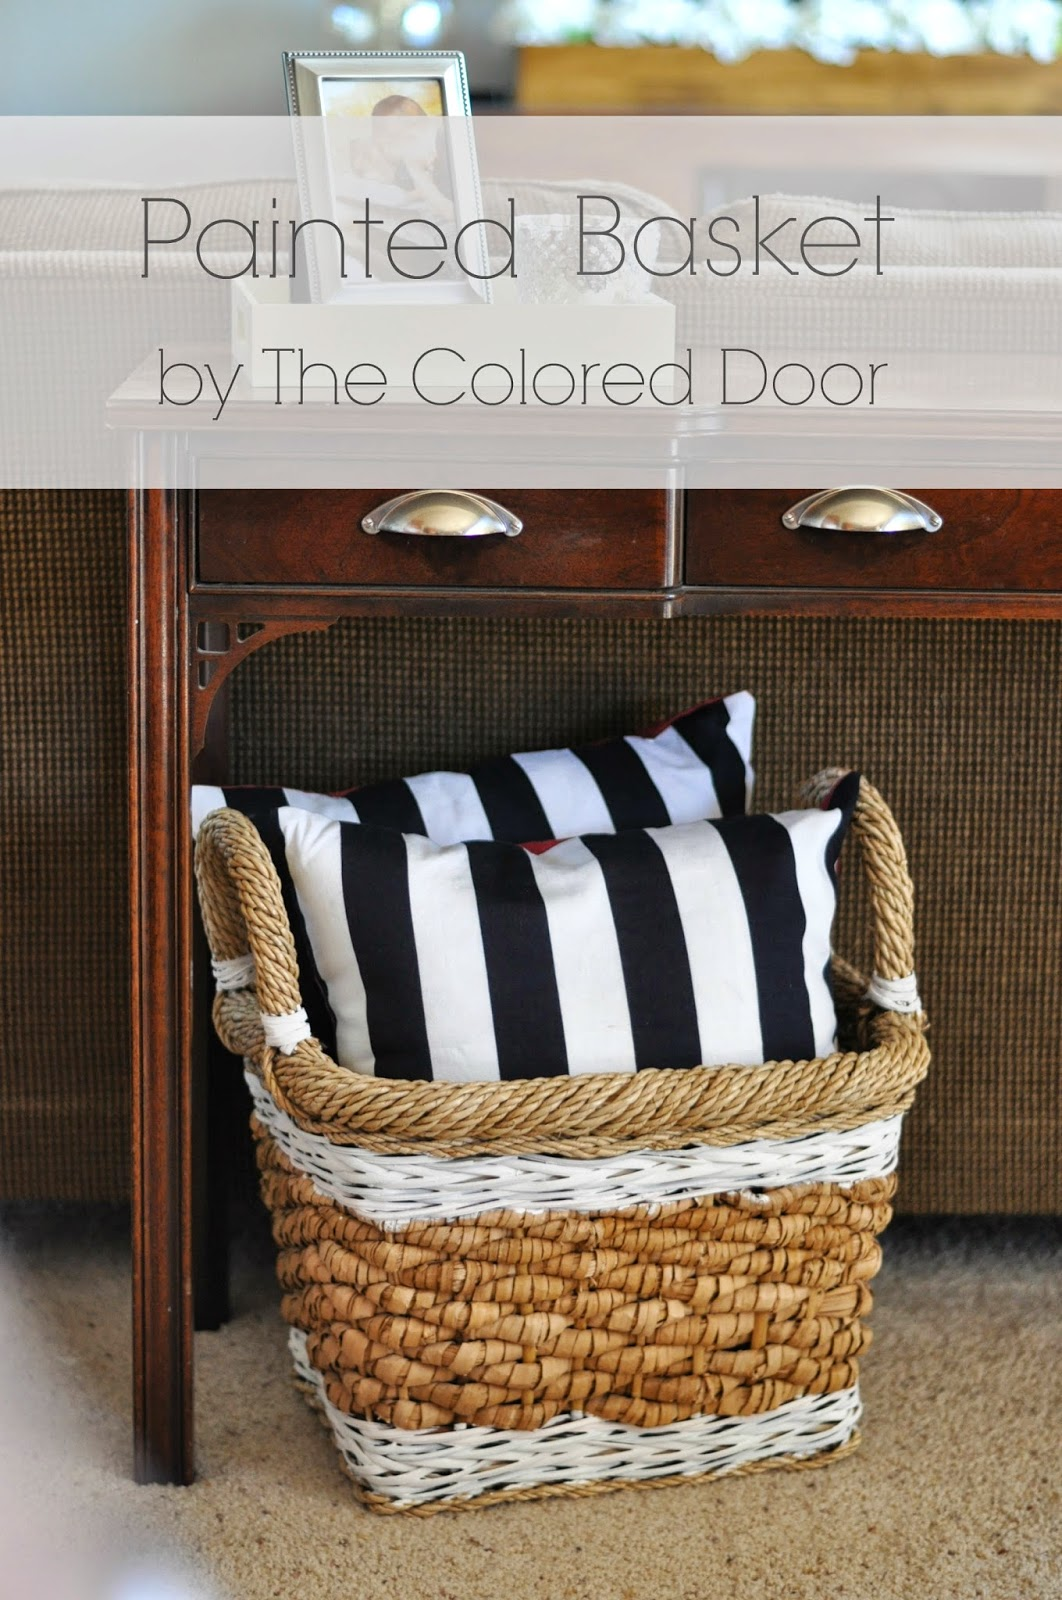 Painted basket - the colored door